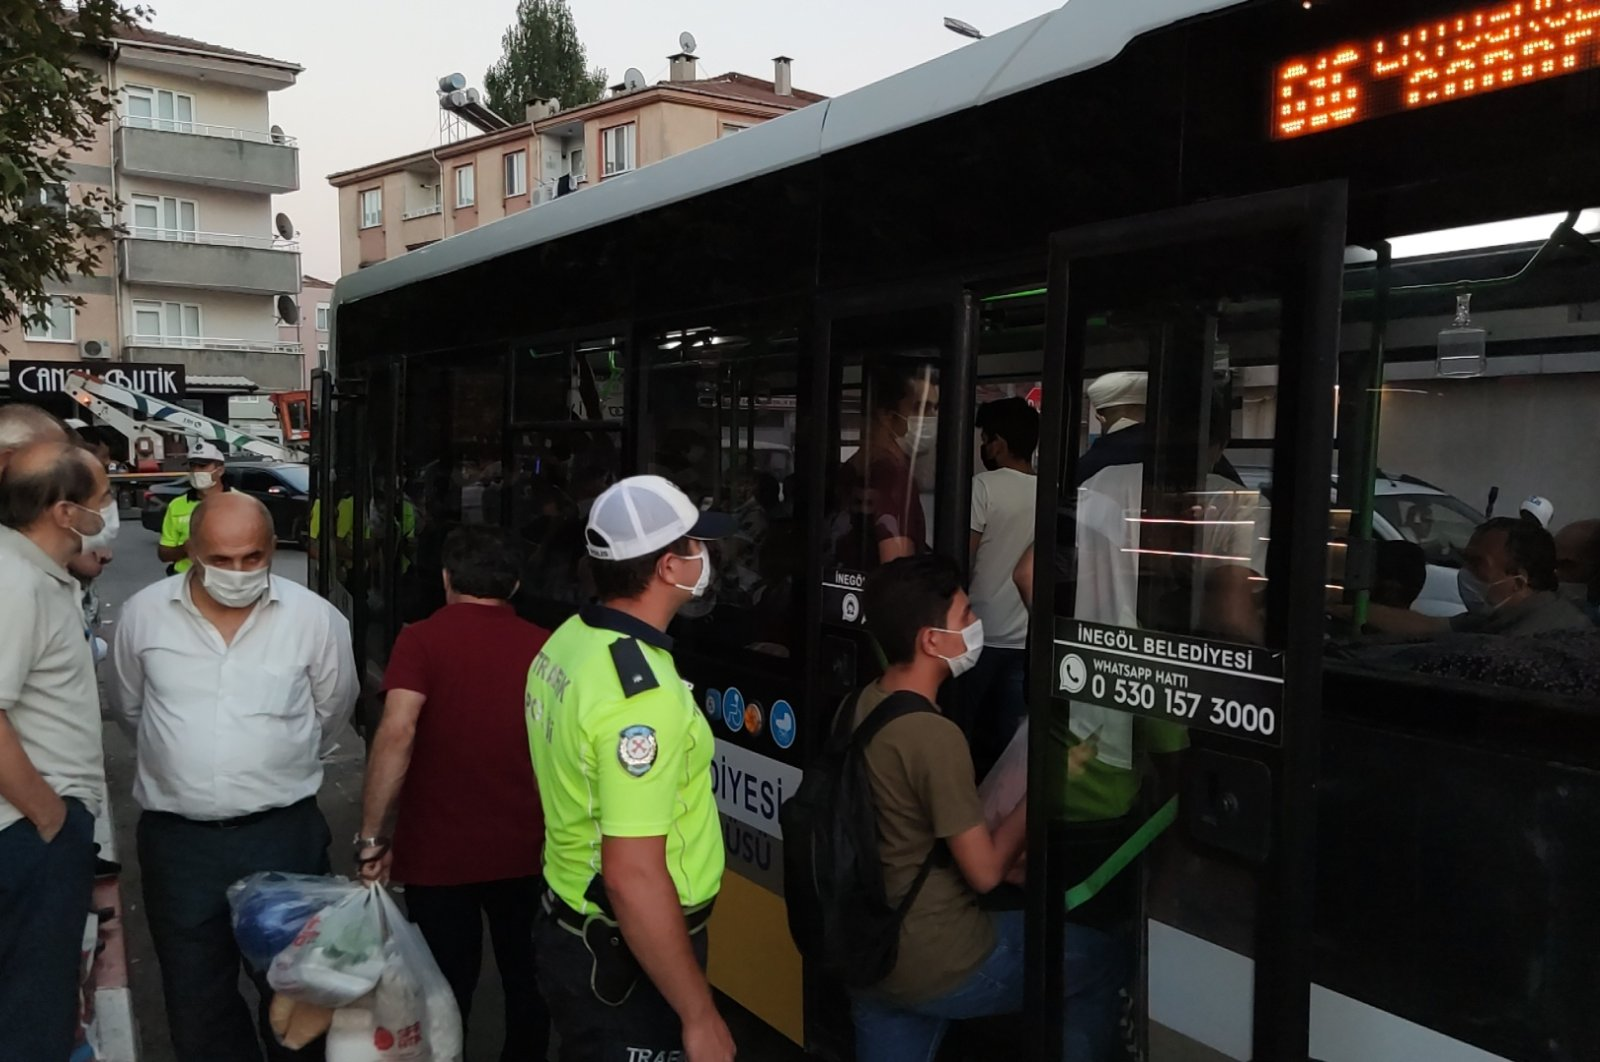 A police officer inspects for compliance with public transport rules in İnegöl district of Bursa, western Turkey, Sept. 11, 2020. (DHA Photo)